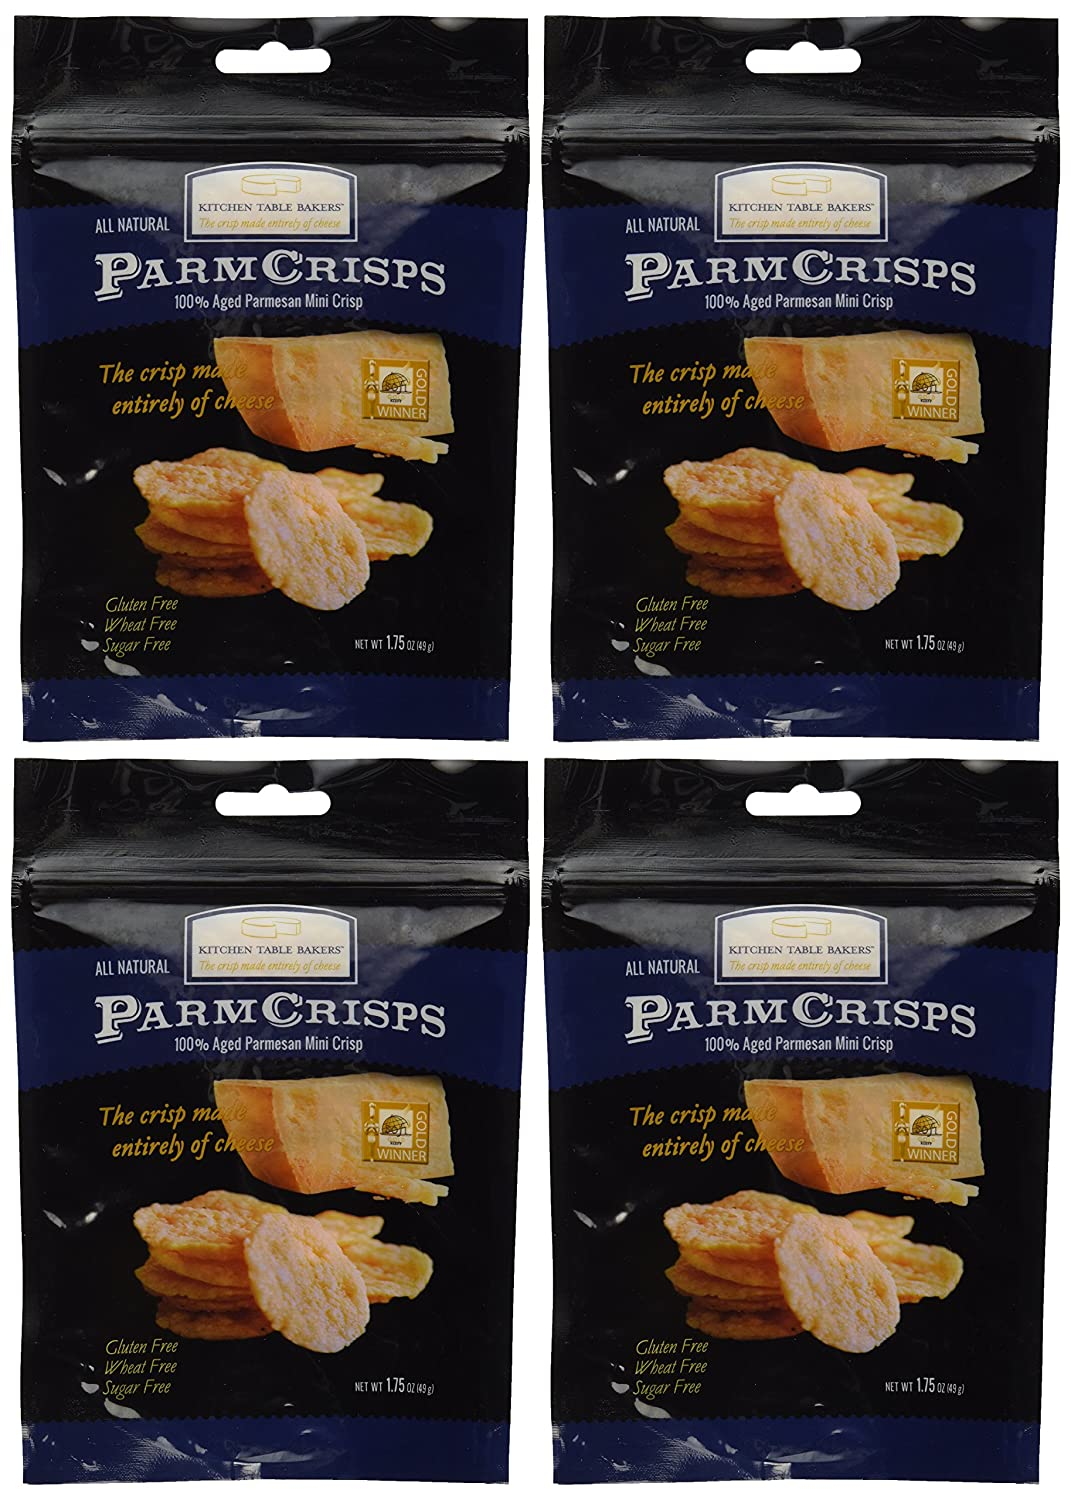 BCXPVA kitchen table bakers Mini Crisps Aged Parmesan Gourmet Cheese Crisps 1 75 Oz Bag By Kitchen Table Bakers Pack of 4 Amazon com Grocery Gourmet Food